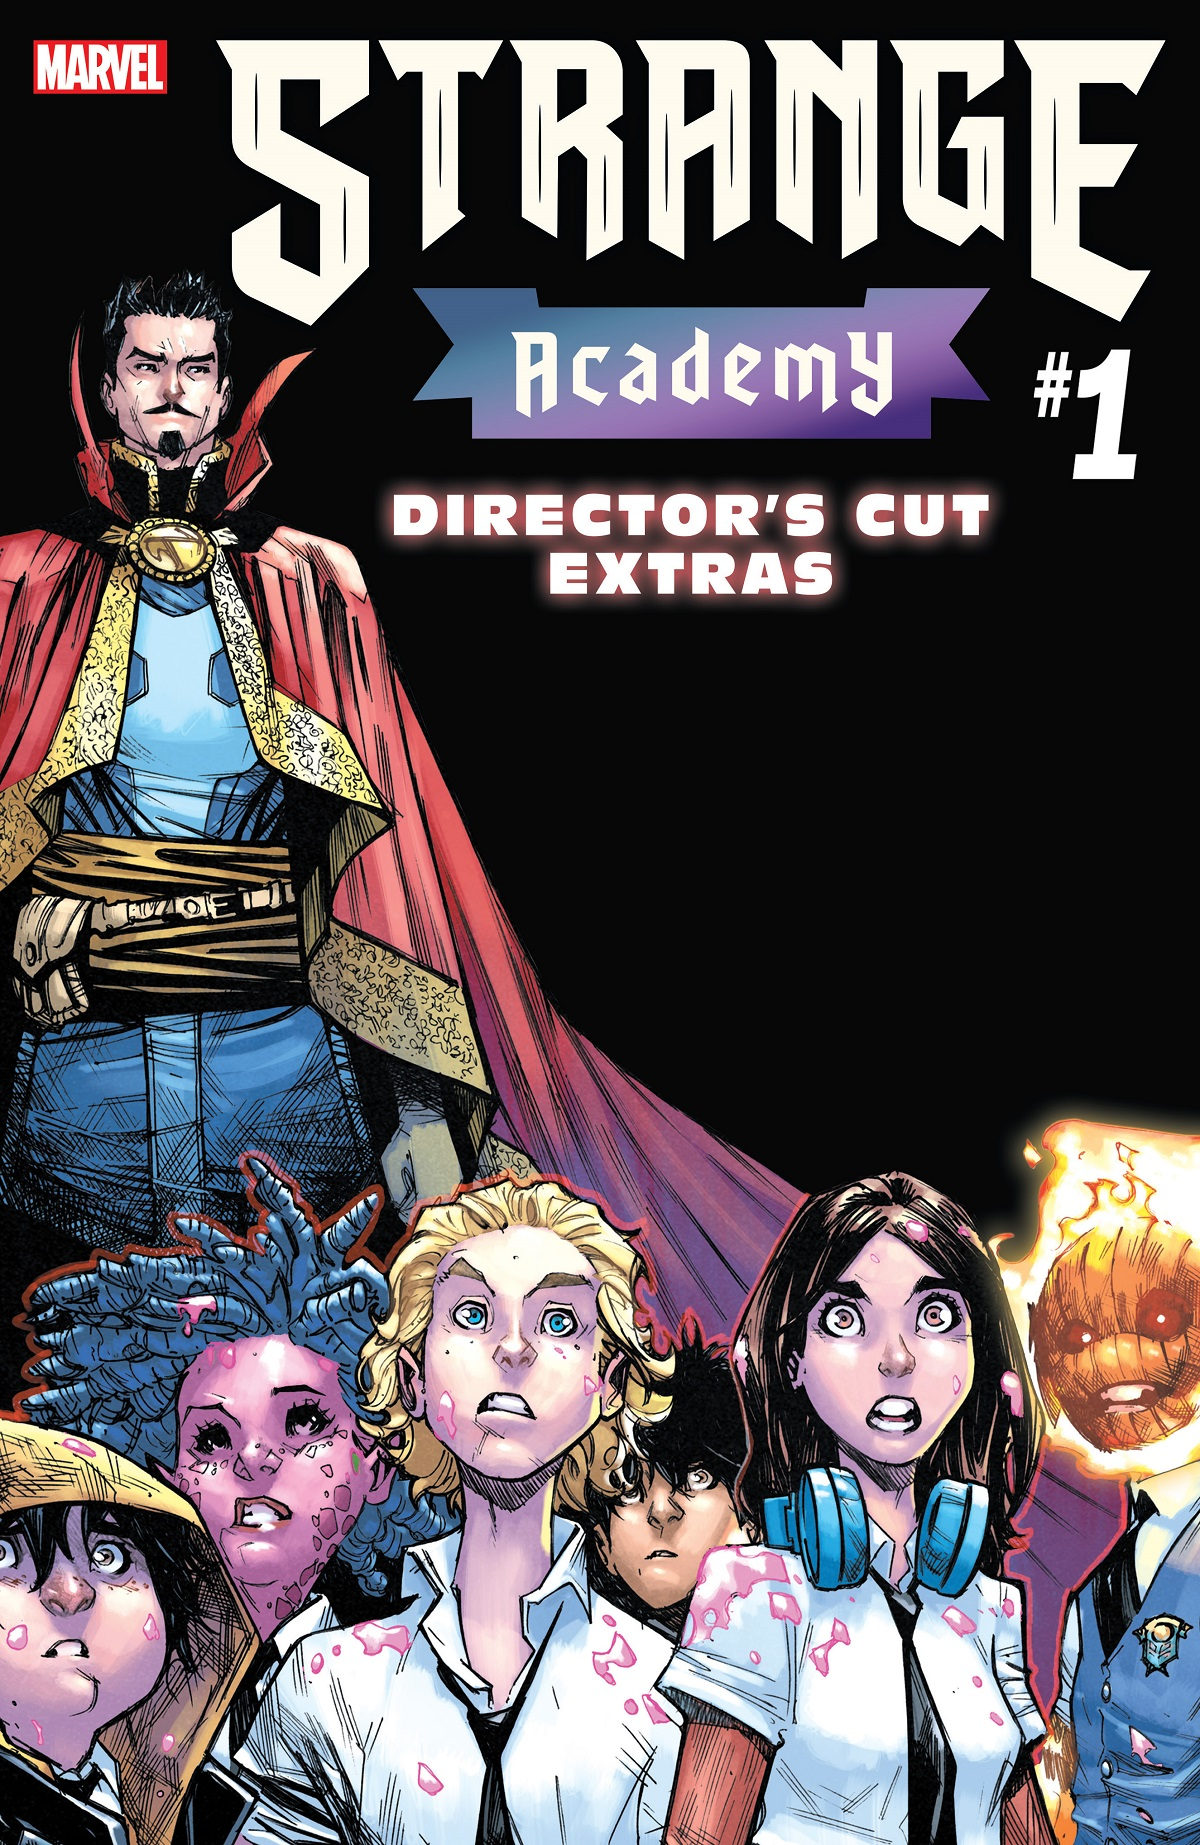 Strange Academy - Director's Cut Edition (2020) #1